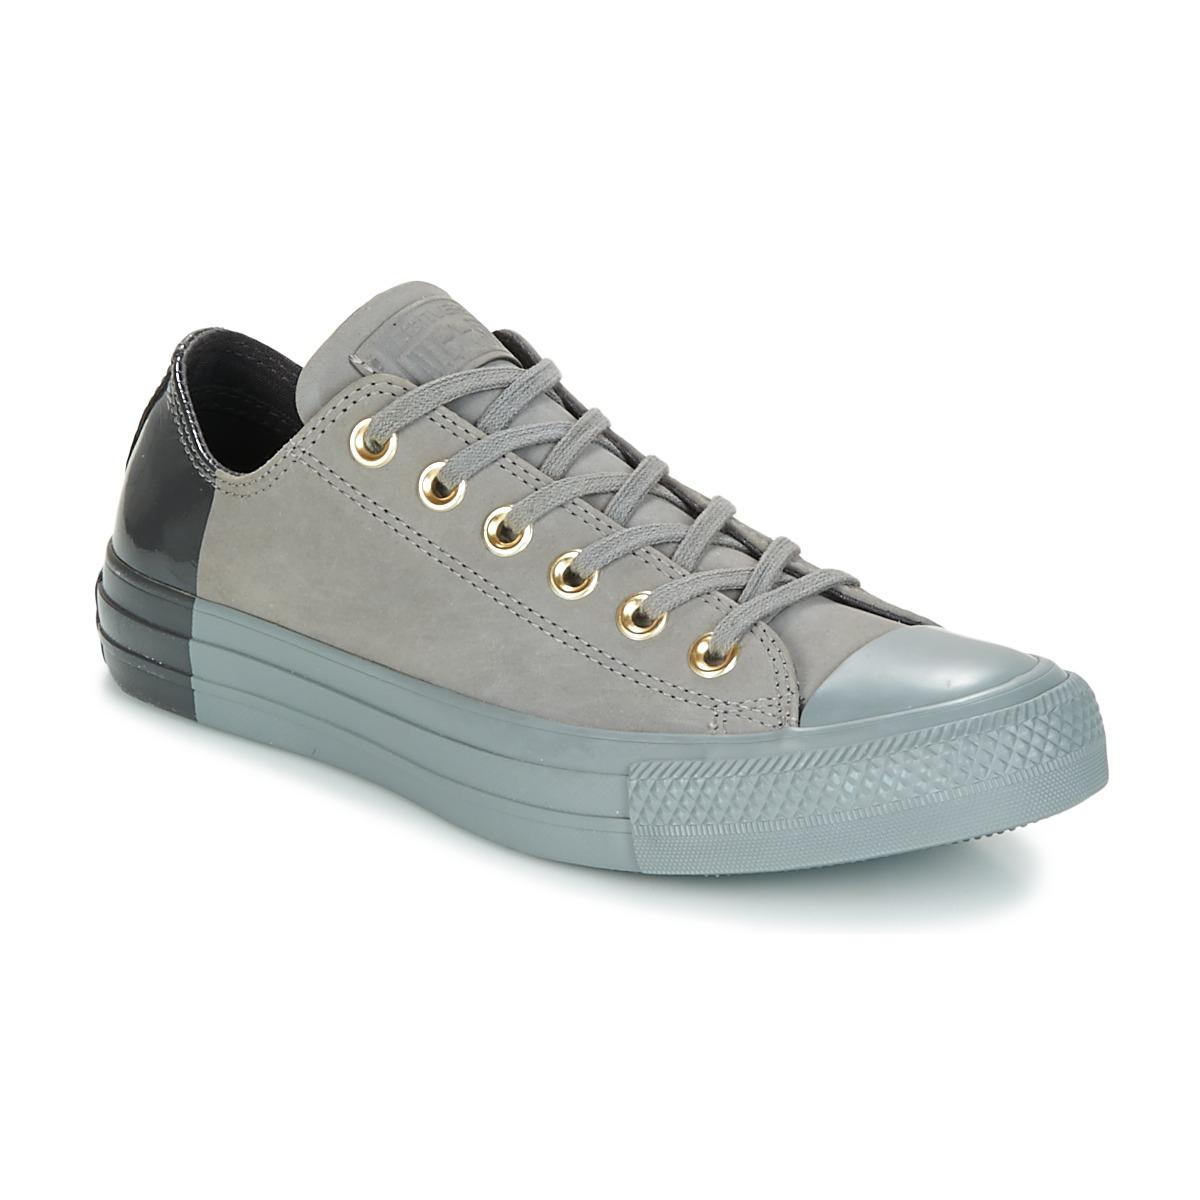 c35fdbaee15 Converse Chuck Taylor All Star Ox Blocked Nubuck Shoes (trainers) in ...